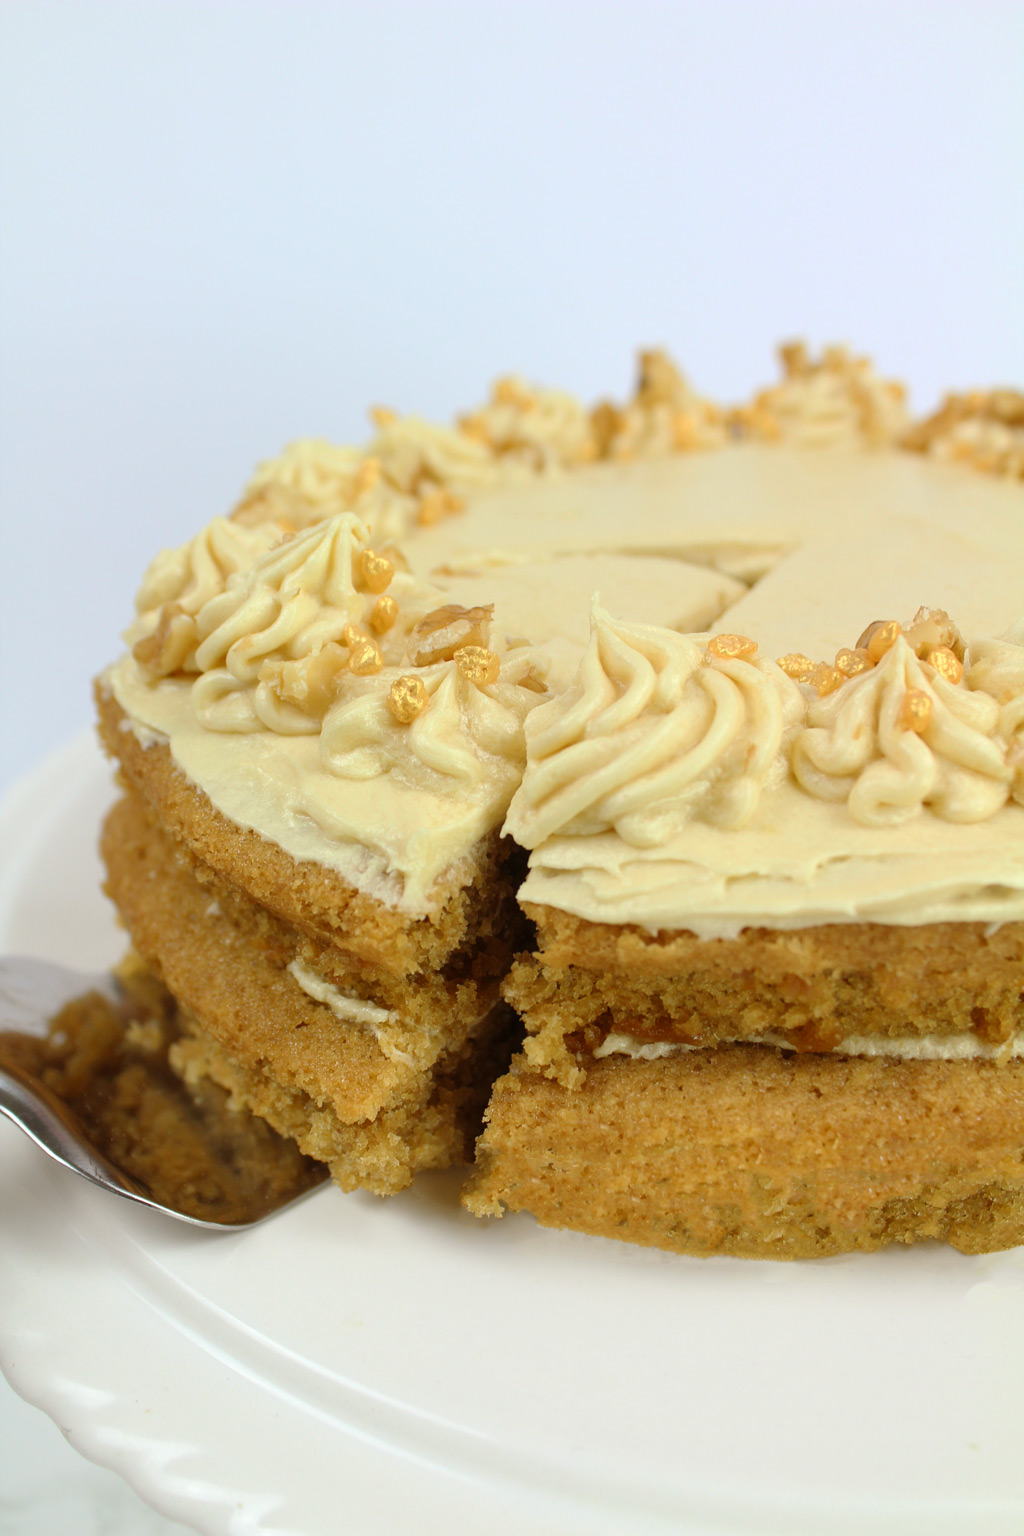 vegan coffee cake with a slice being taken out of it